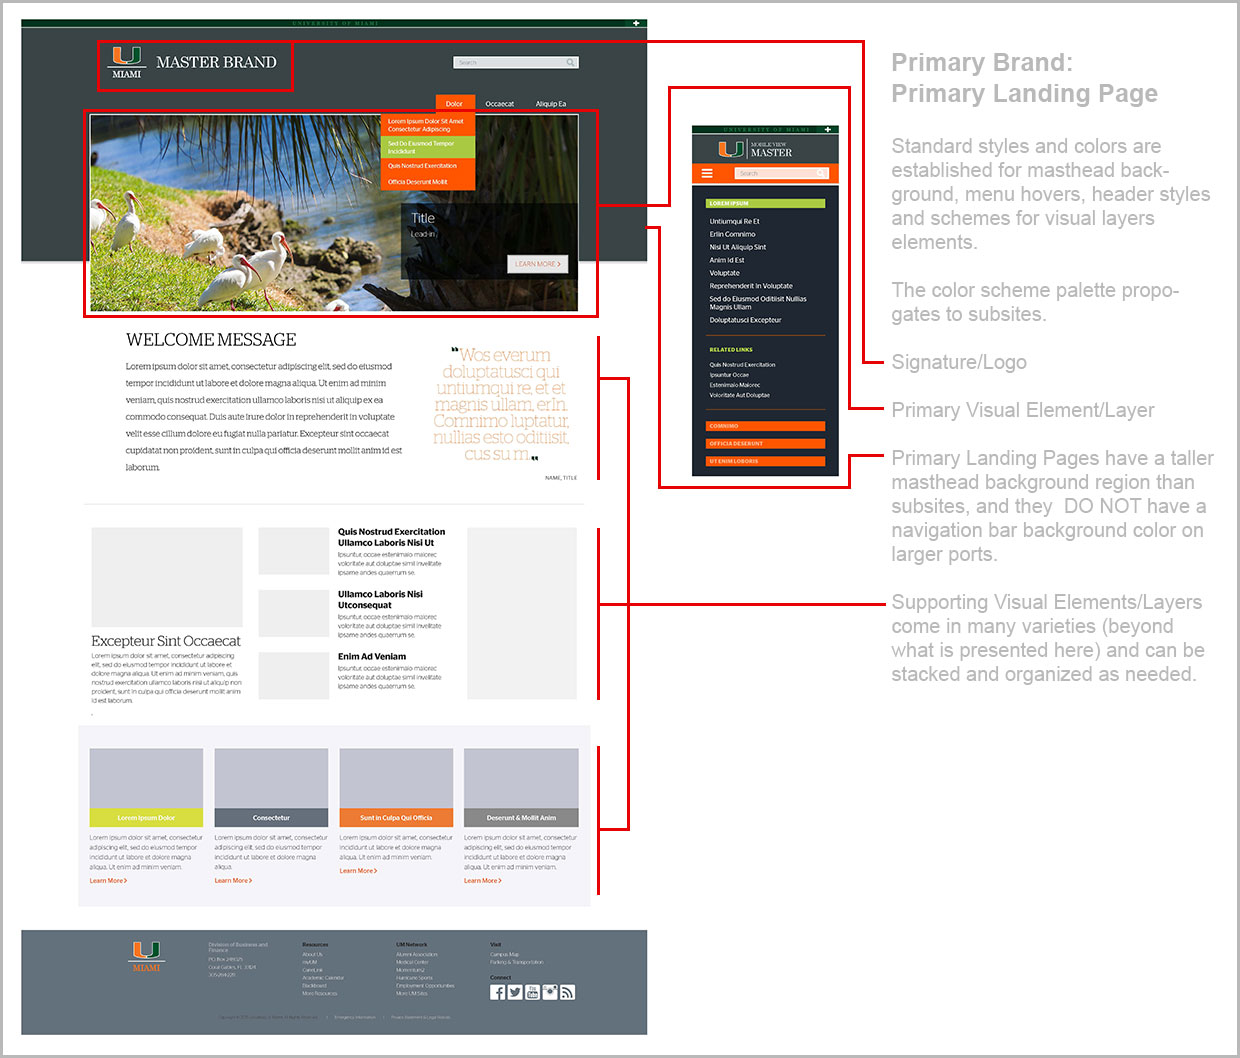 Primary Landing Page